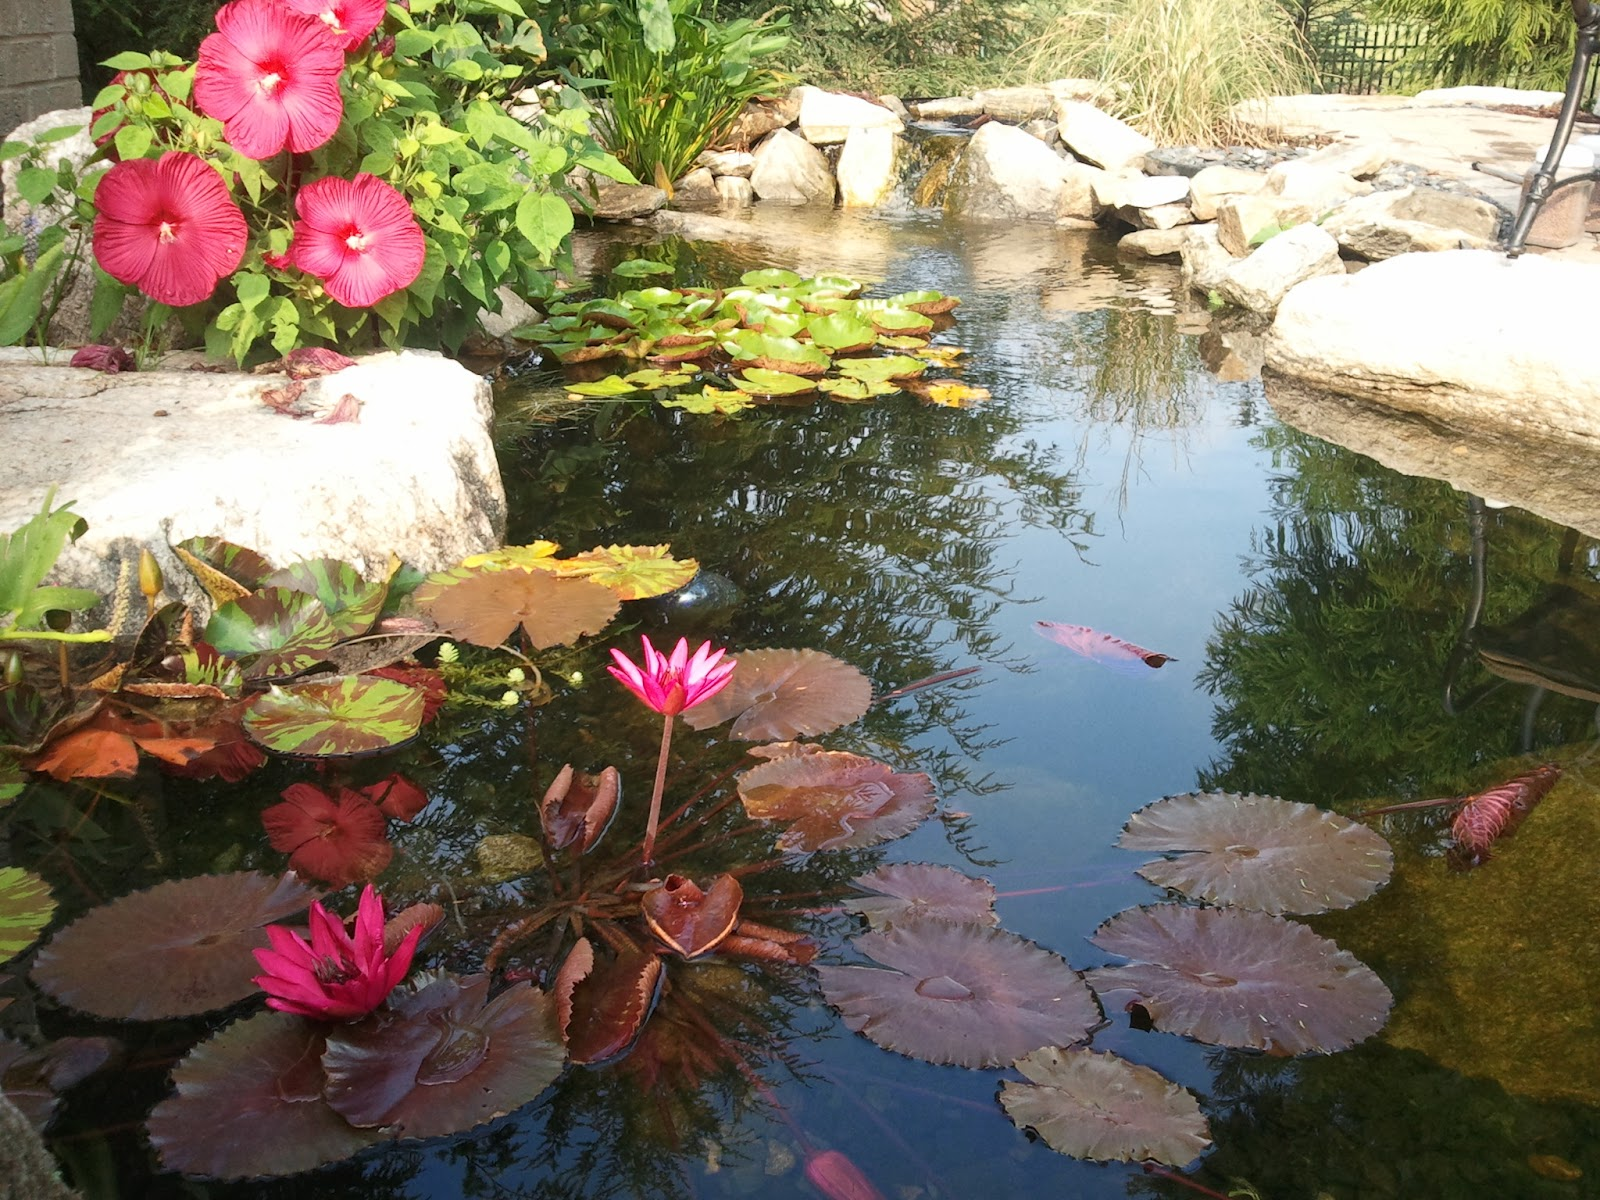 Pond Plants And Flowers